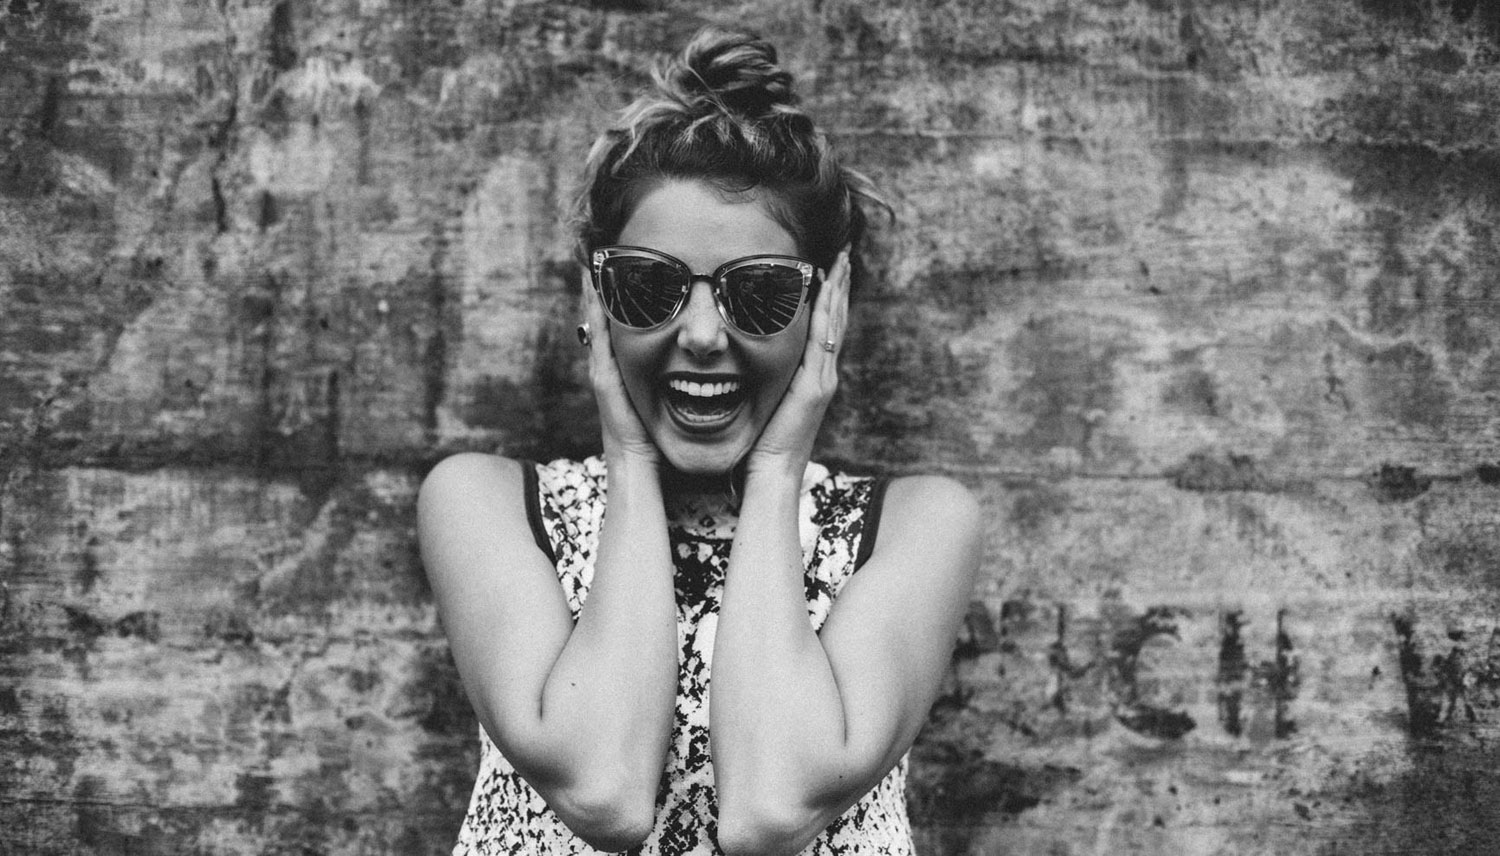 How to be happy in 6 steps or less